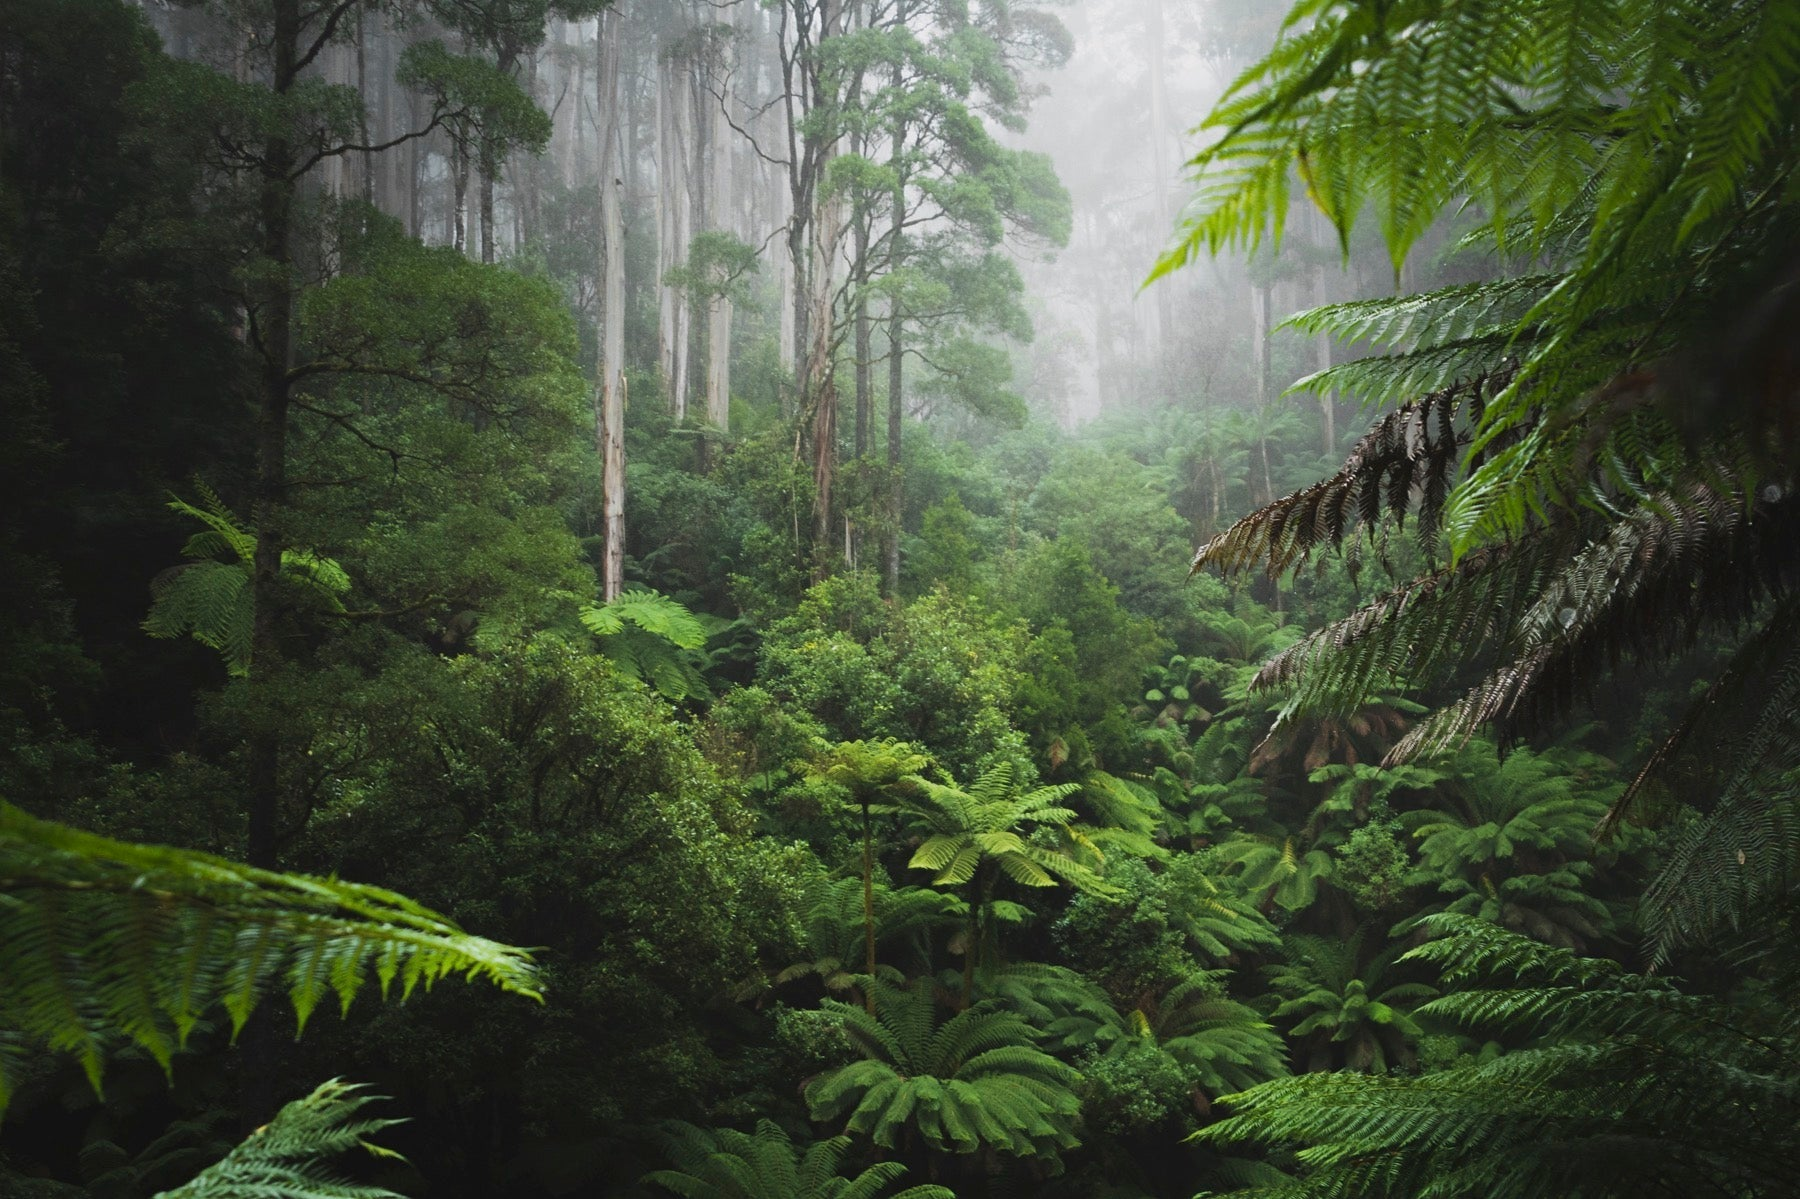 tropical forest ecological biodiversity